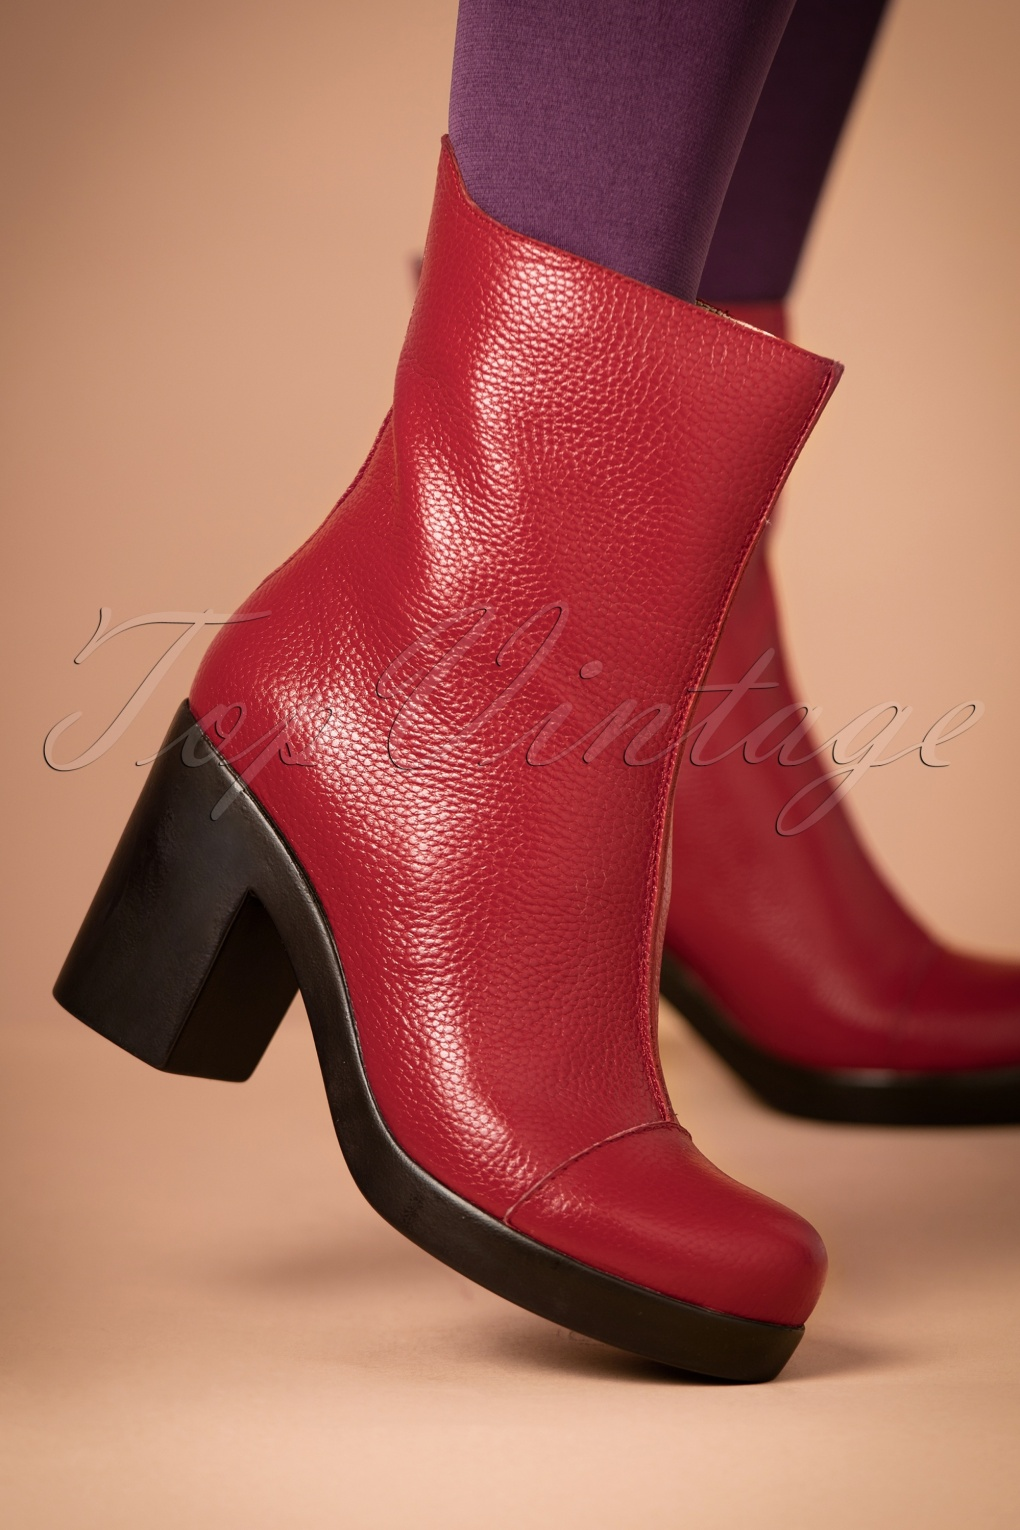 Retro Boots, Granny Boots, 70s Boots 70s Saker Lifestyle Booties in Red £151.06 AT vintagedancer.com